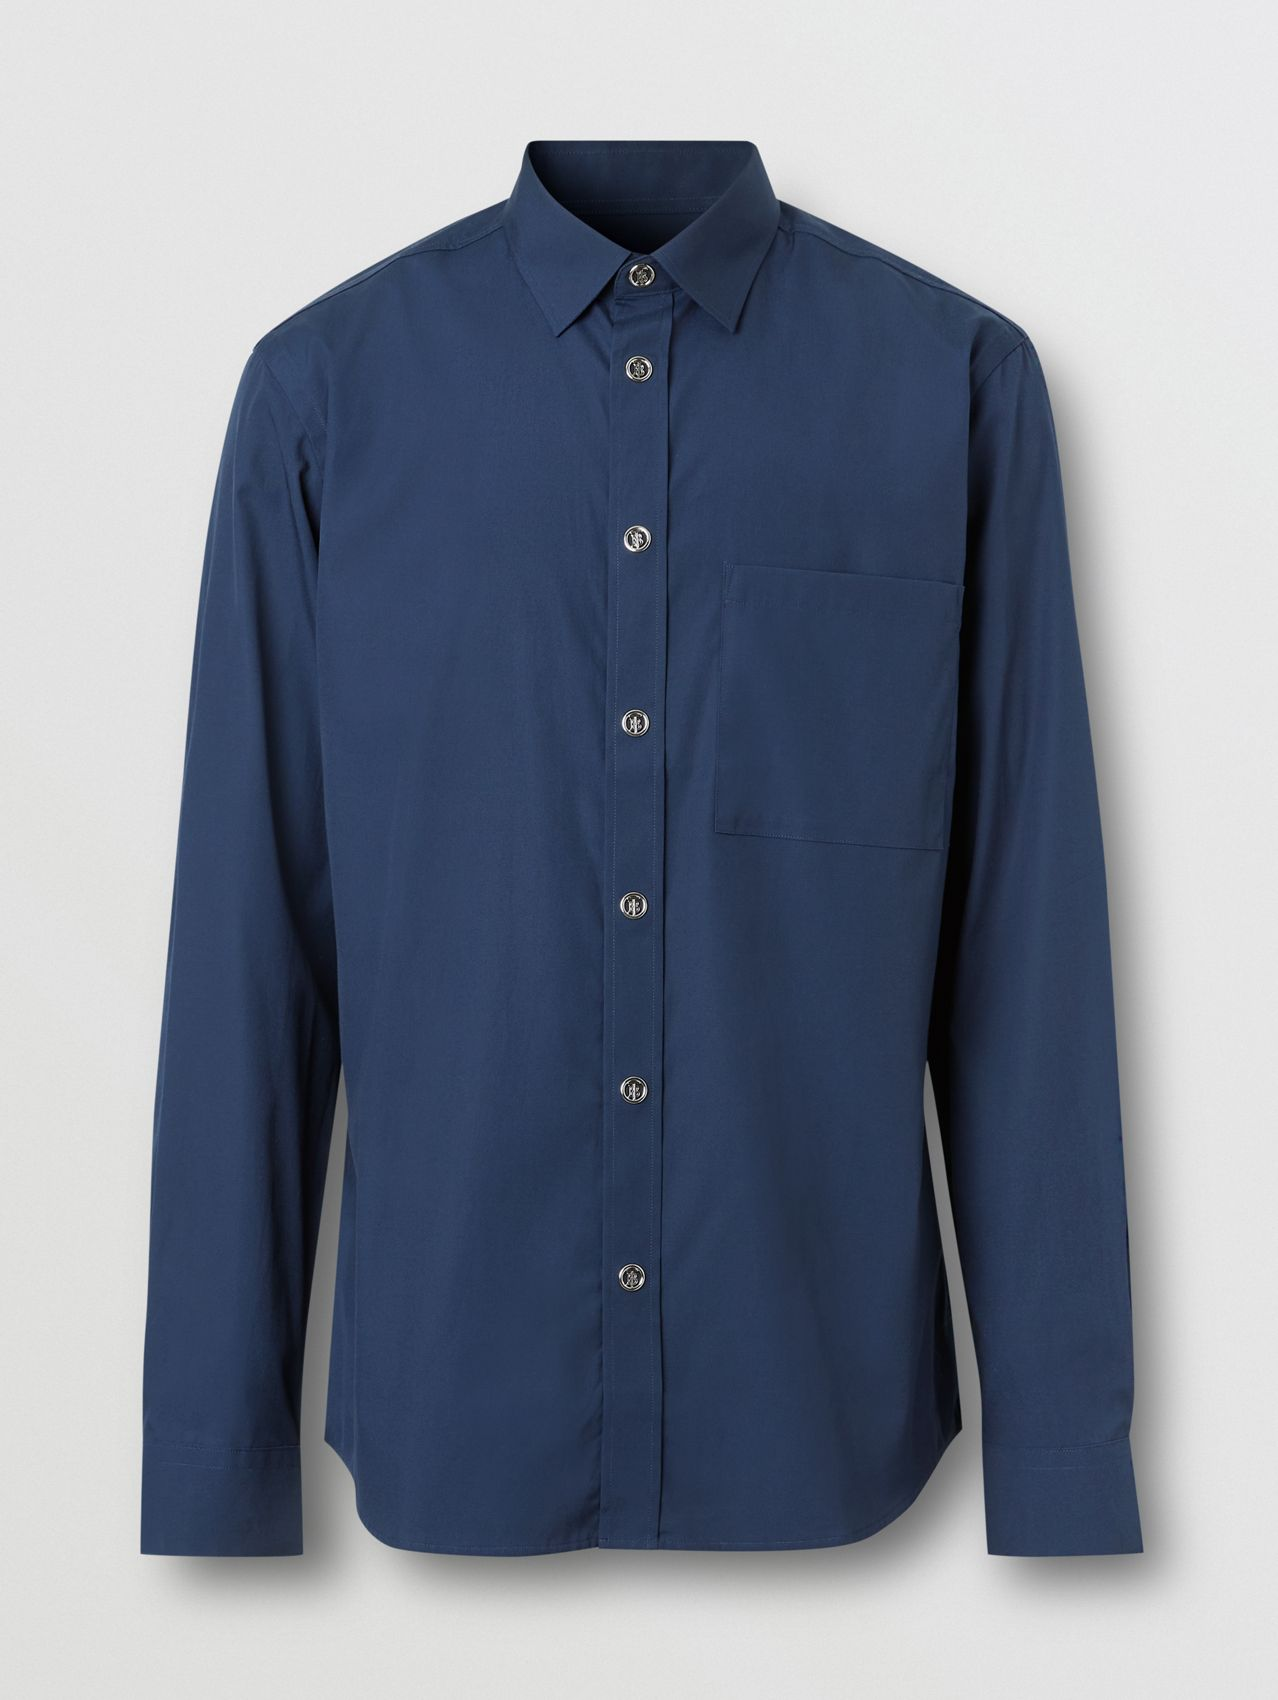 Monogram Motif Stretch Cotton Shirt in Navy